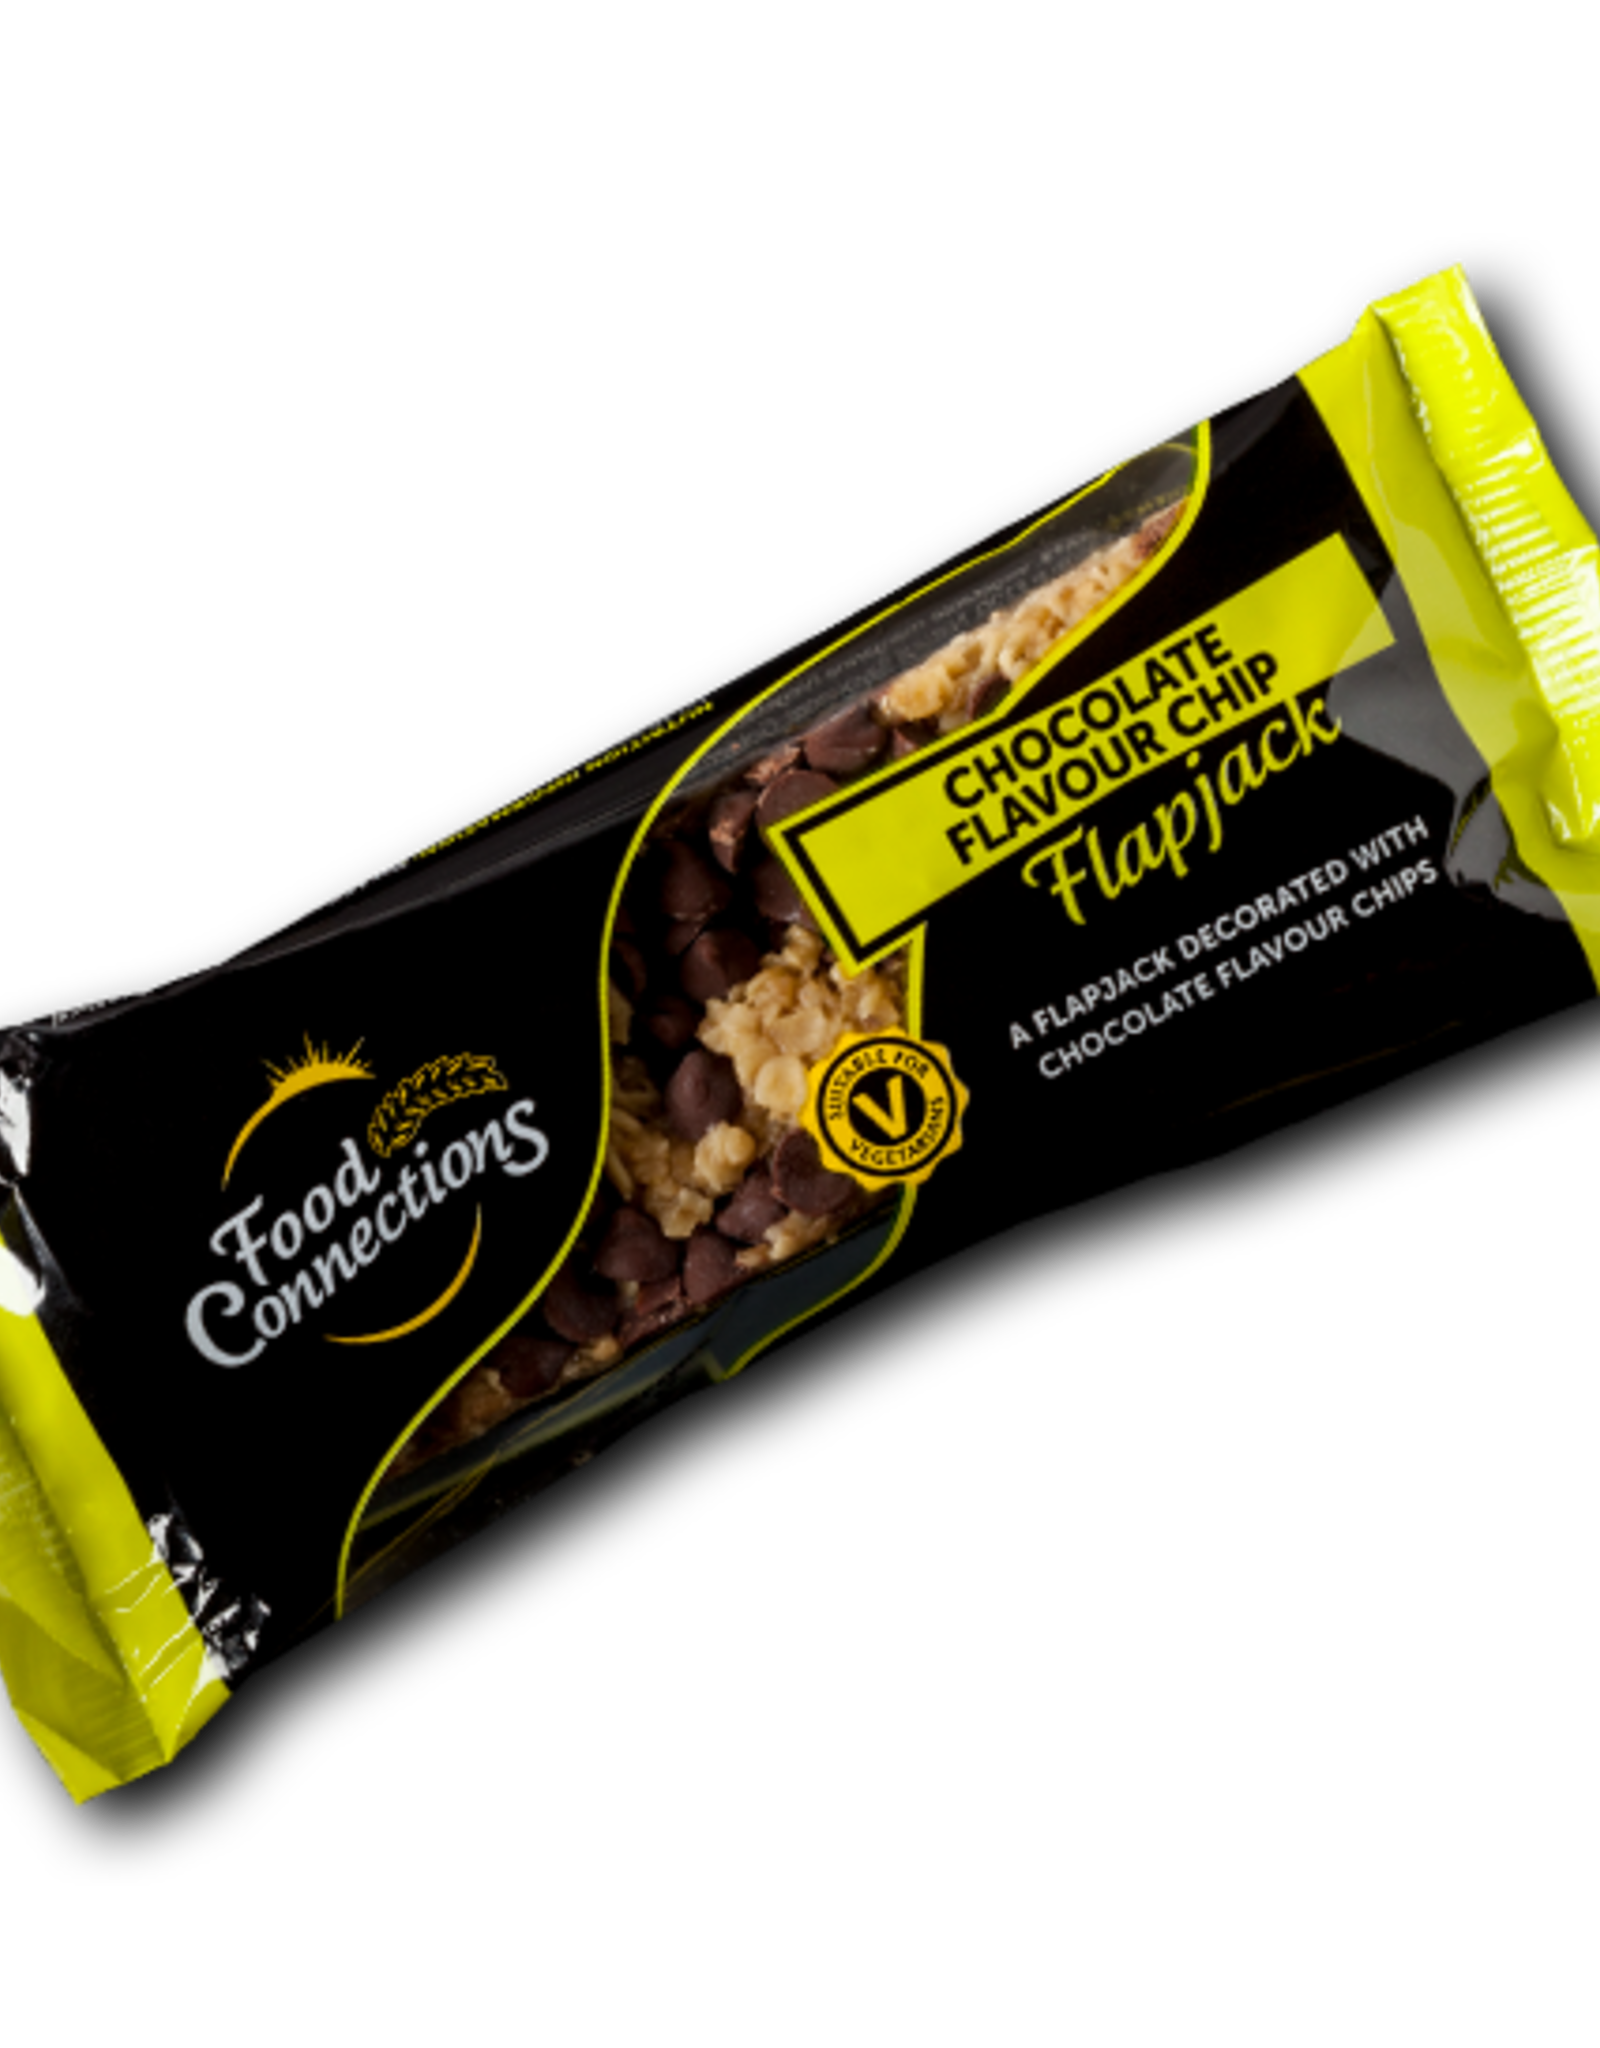 Food Connections Chocolate Flavour chip Flapjack